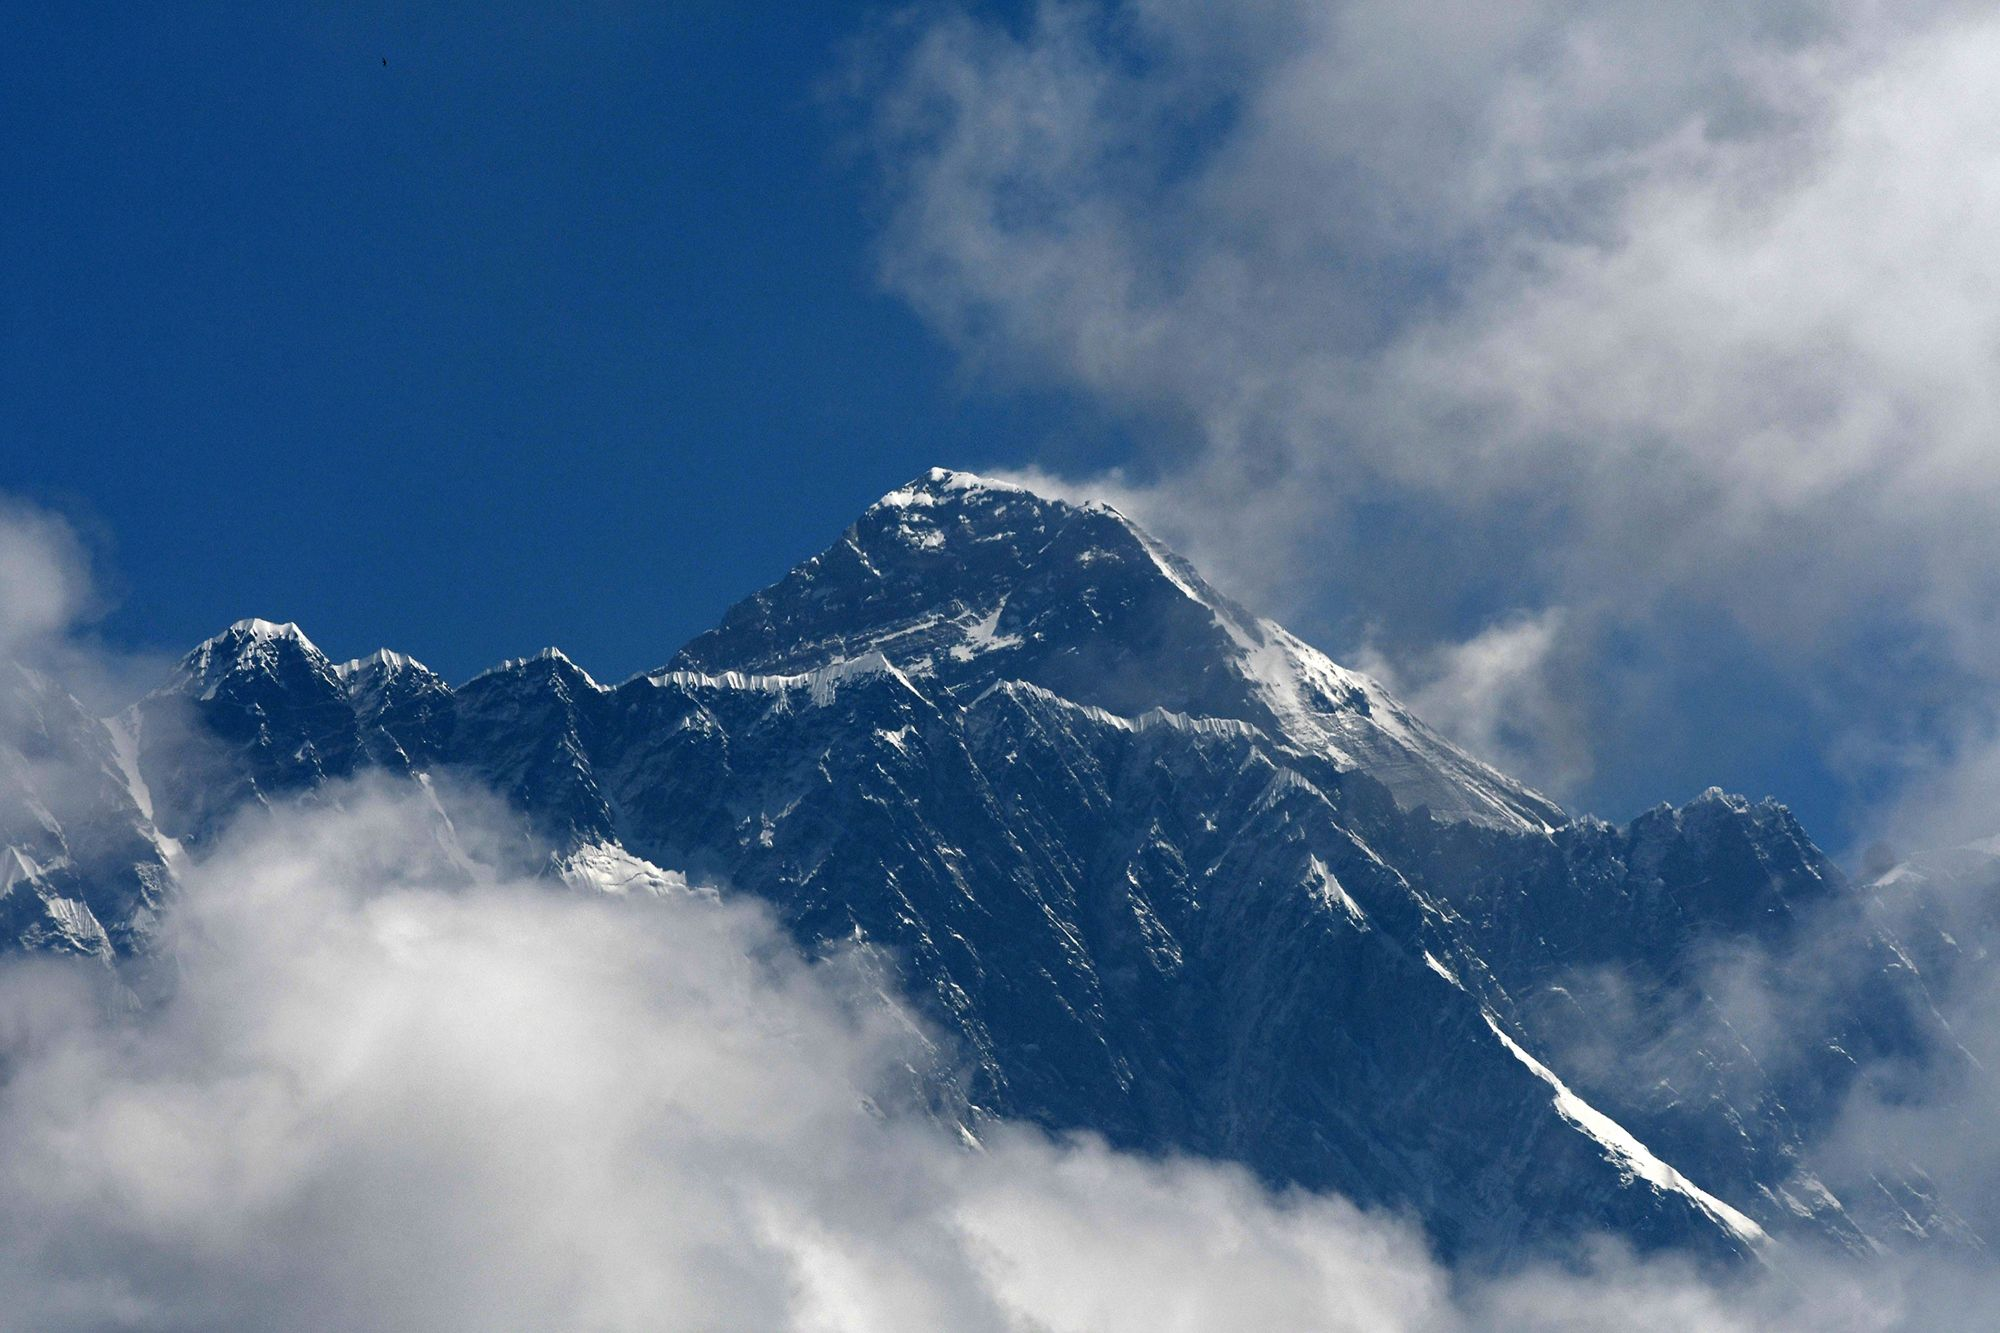 Mount Everest is seen northeast of Kathmandu on May 27, 2019. (Credit: Prakash Mathema / AFP / Getty Images)